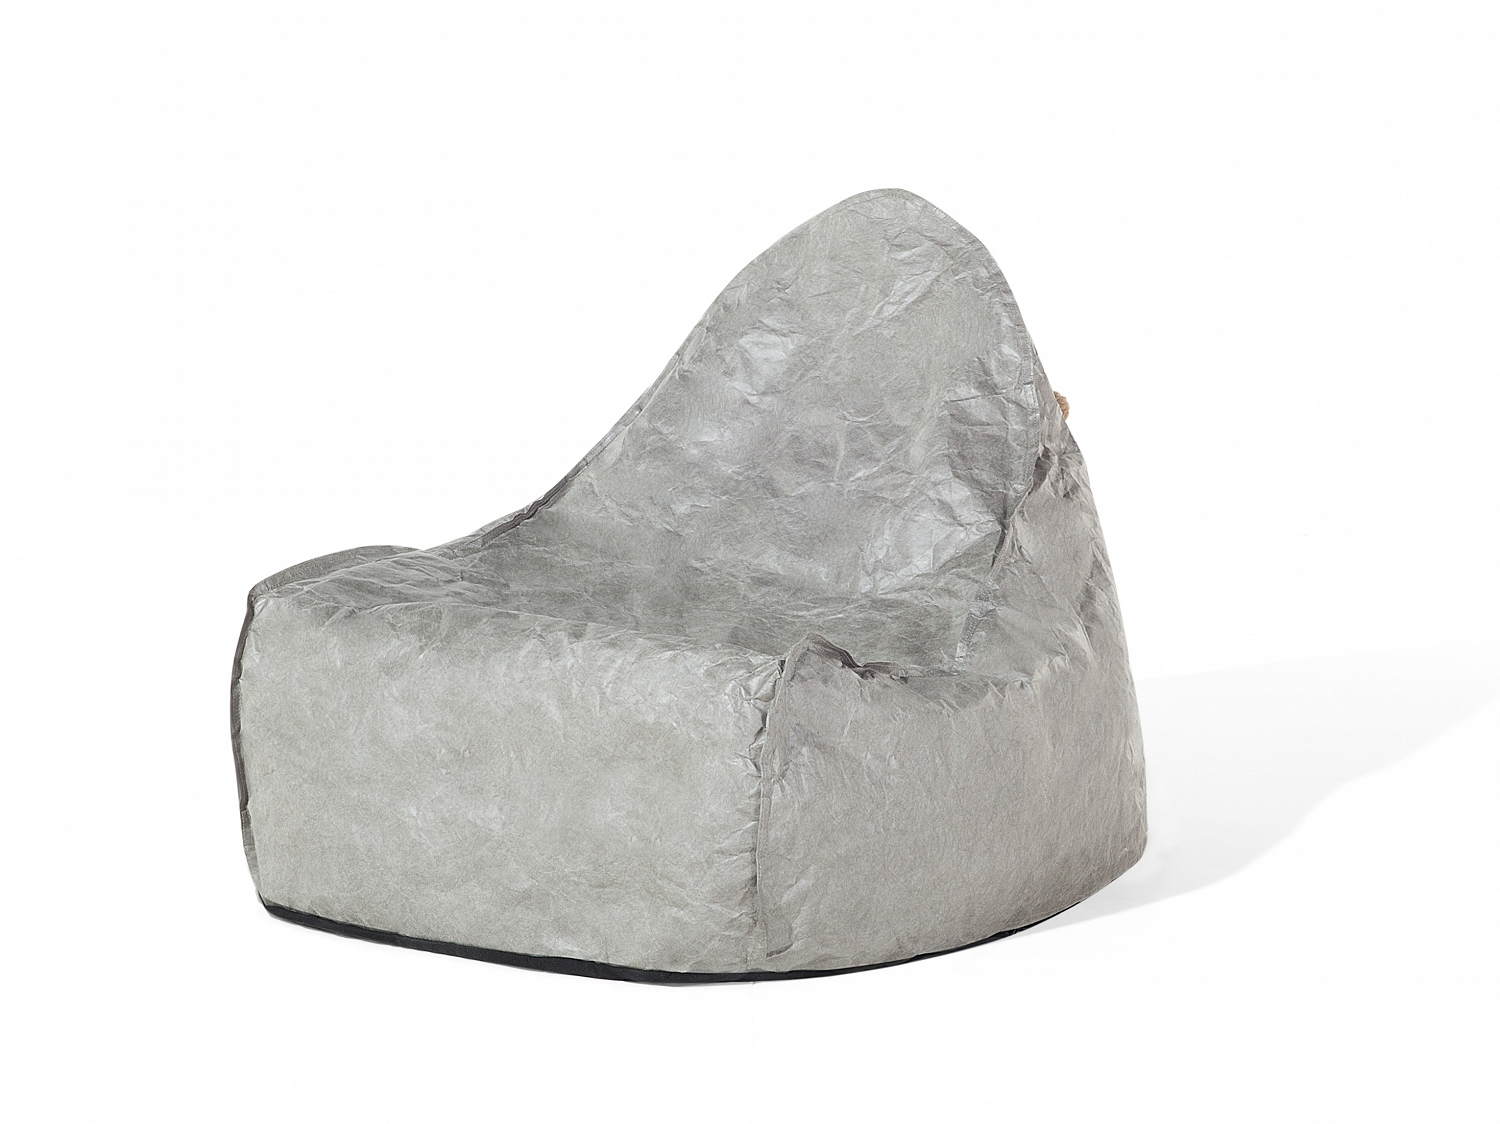 Cocktailsessel Grau Sitzsack Grau Cocktailsessel Loungesessel Sack Bean Bag